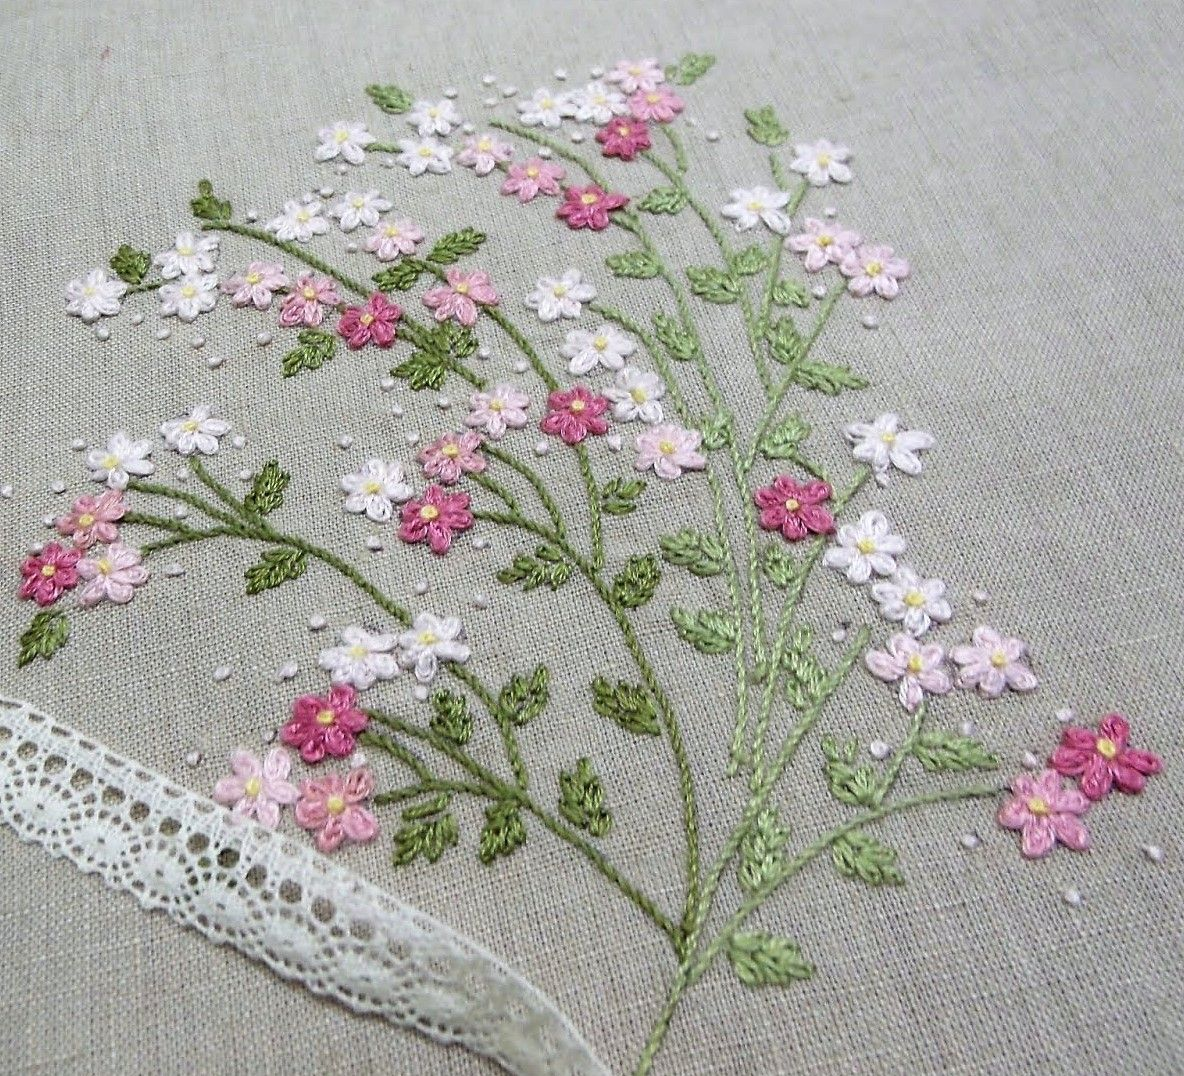 Pin by 순지샵 on 자수 pinterest embroidery hand embroidery and